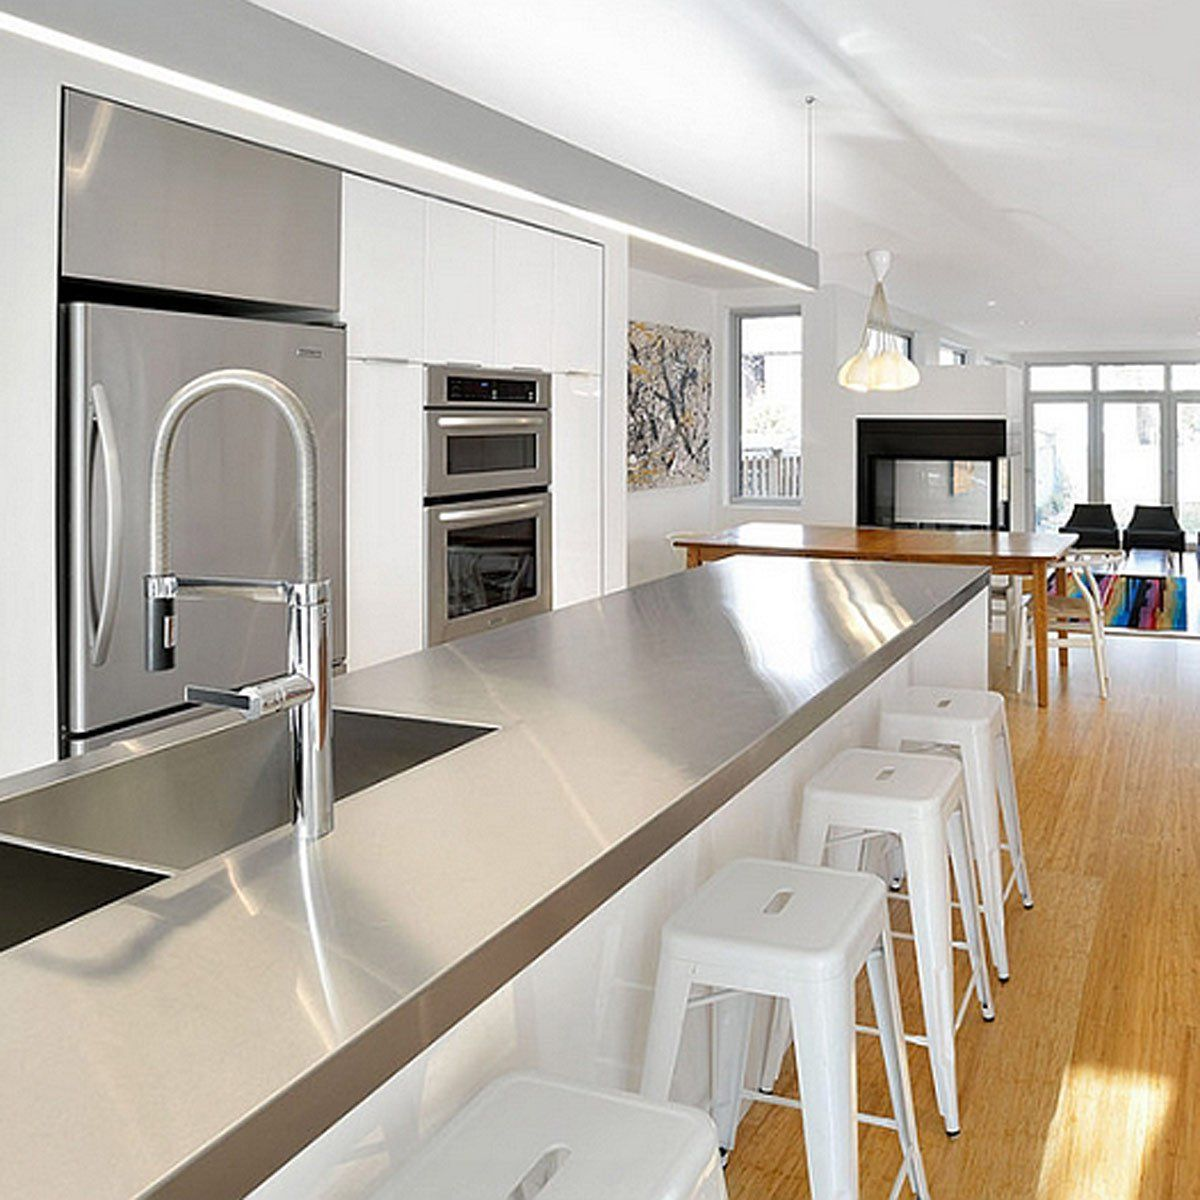 10 Kitchen Countertop Ideas People Are Doing Right Now Kitchen Countertops Outdoor Kitchen Countertops Stainless Steel Kitchen Cabinets